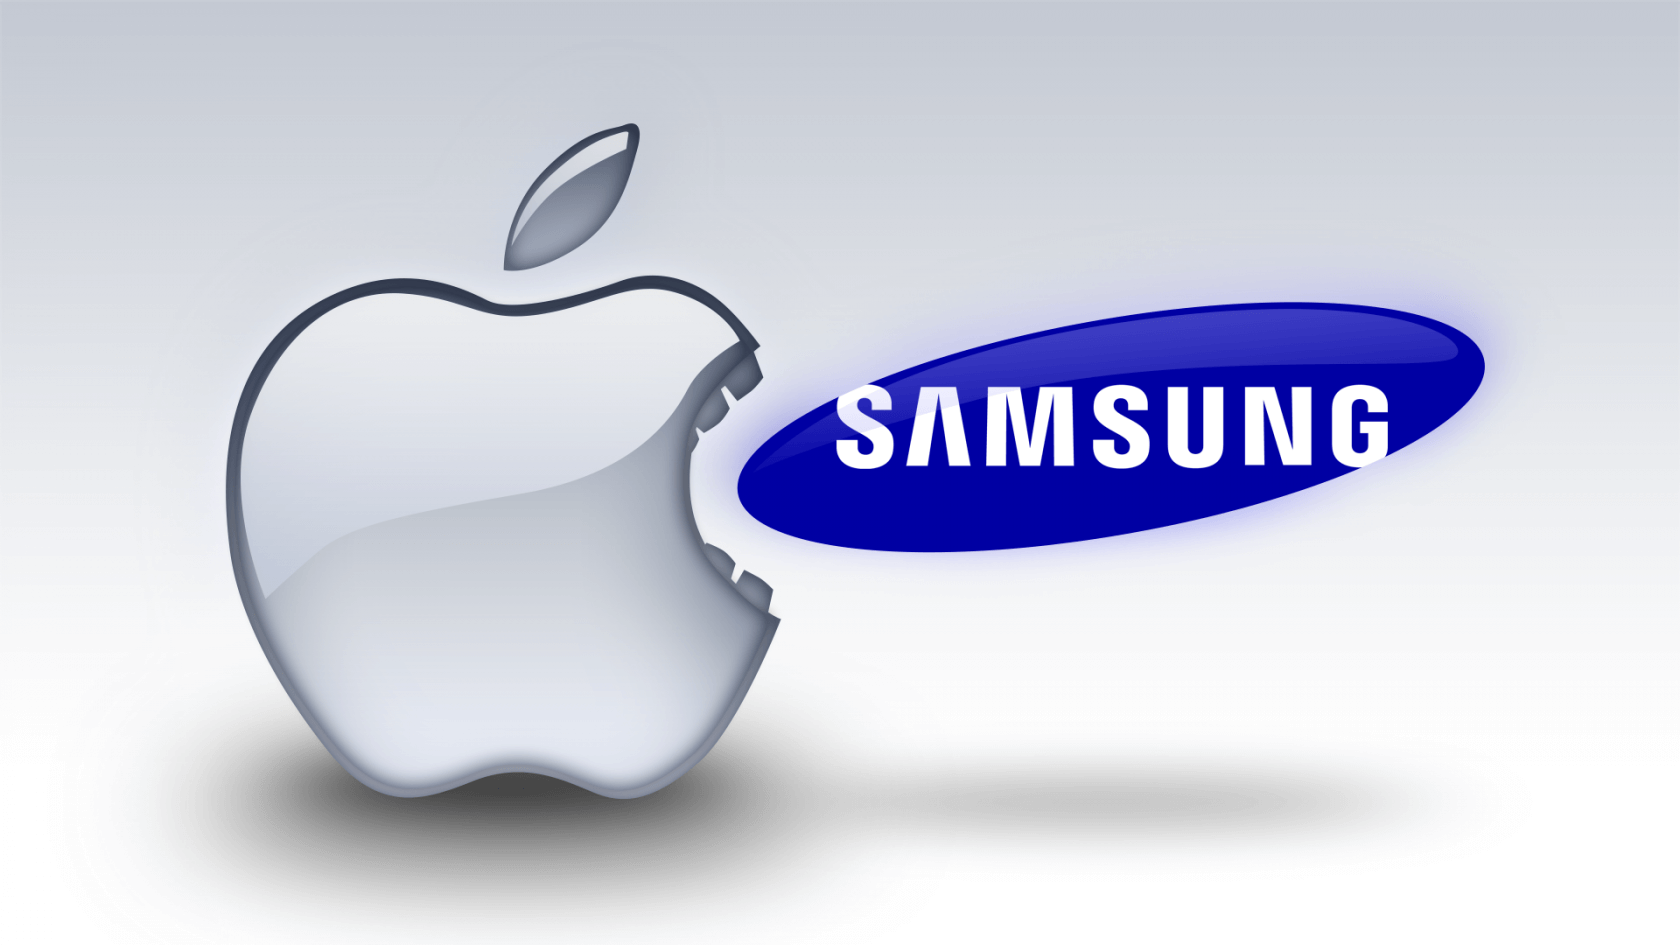 Apple wants Samsung to cough up $1bn in patent damages from 2012